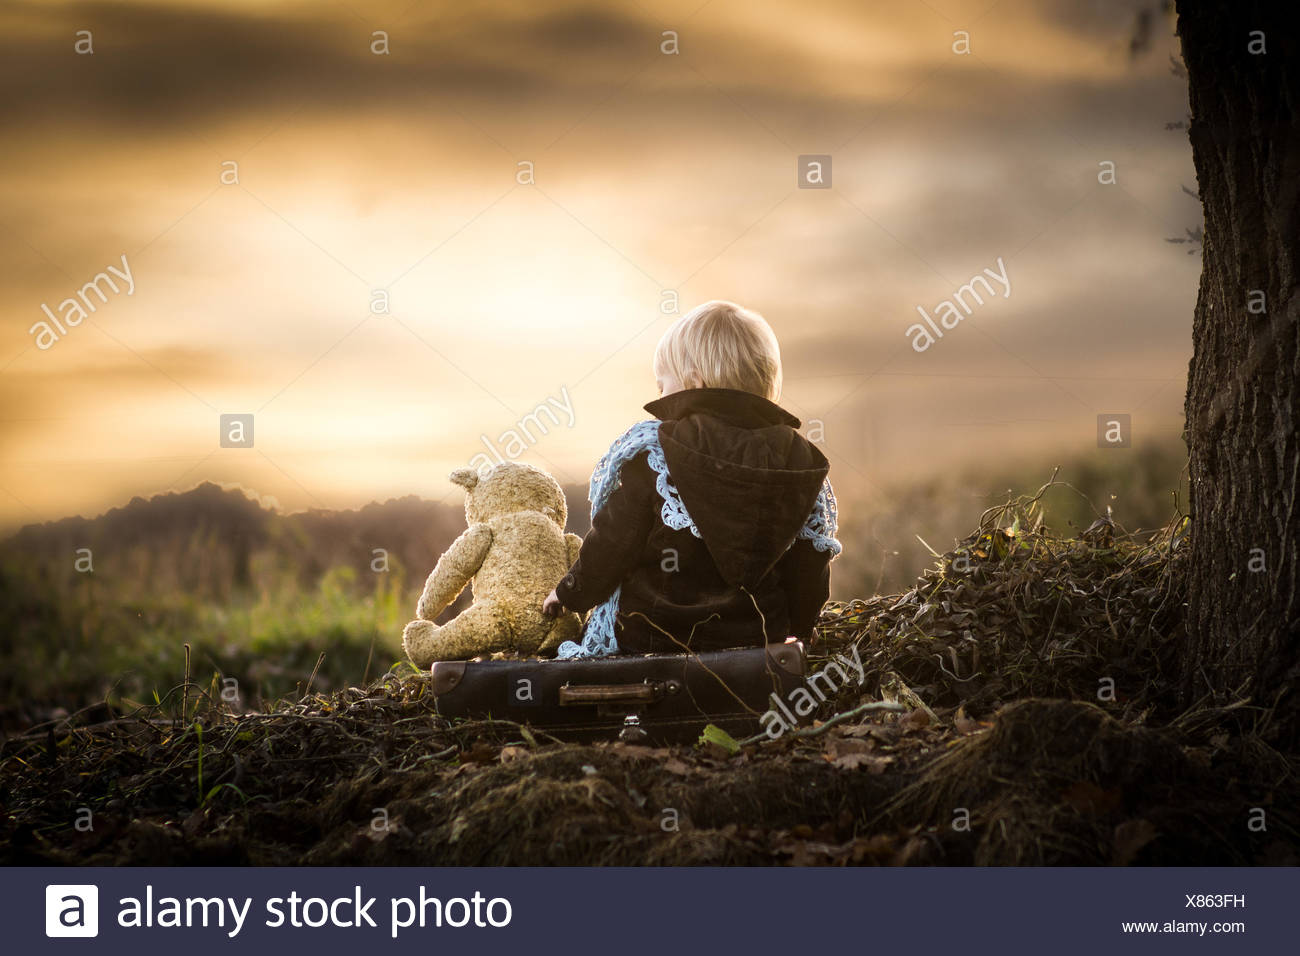 Poland, Rear view of boy sitting on tree roots with teddy bear - Stock Image